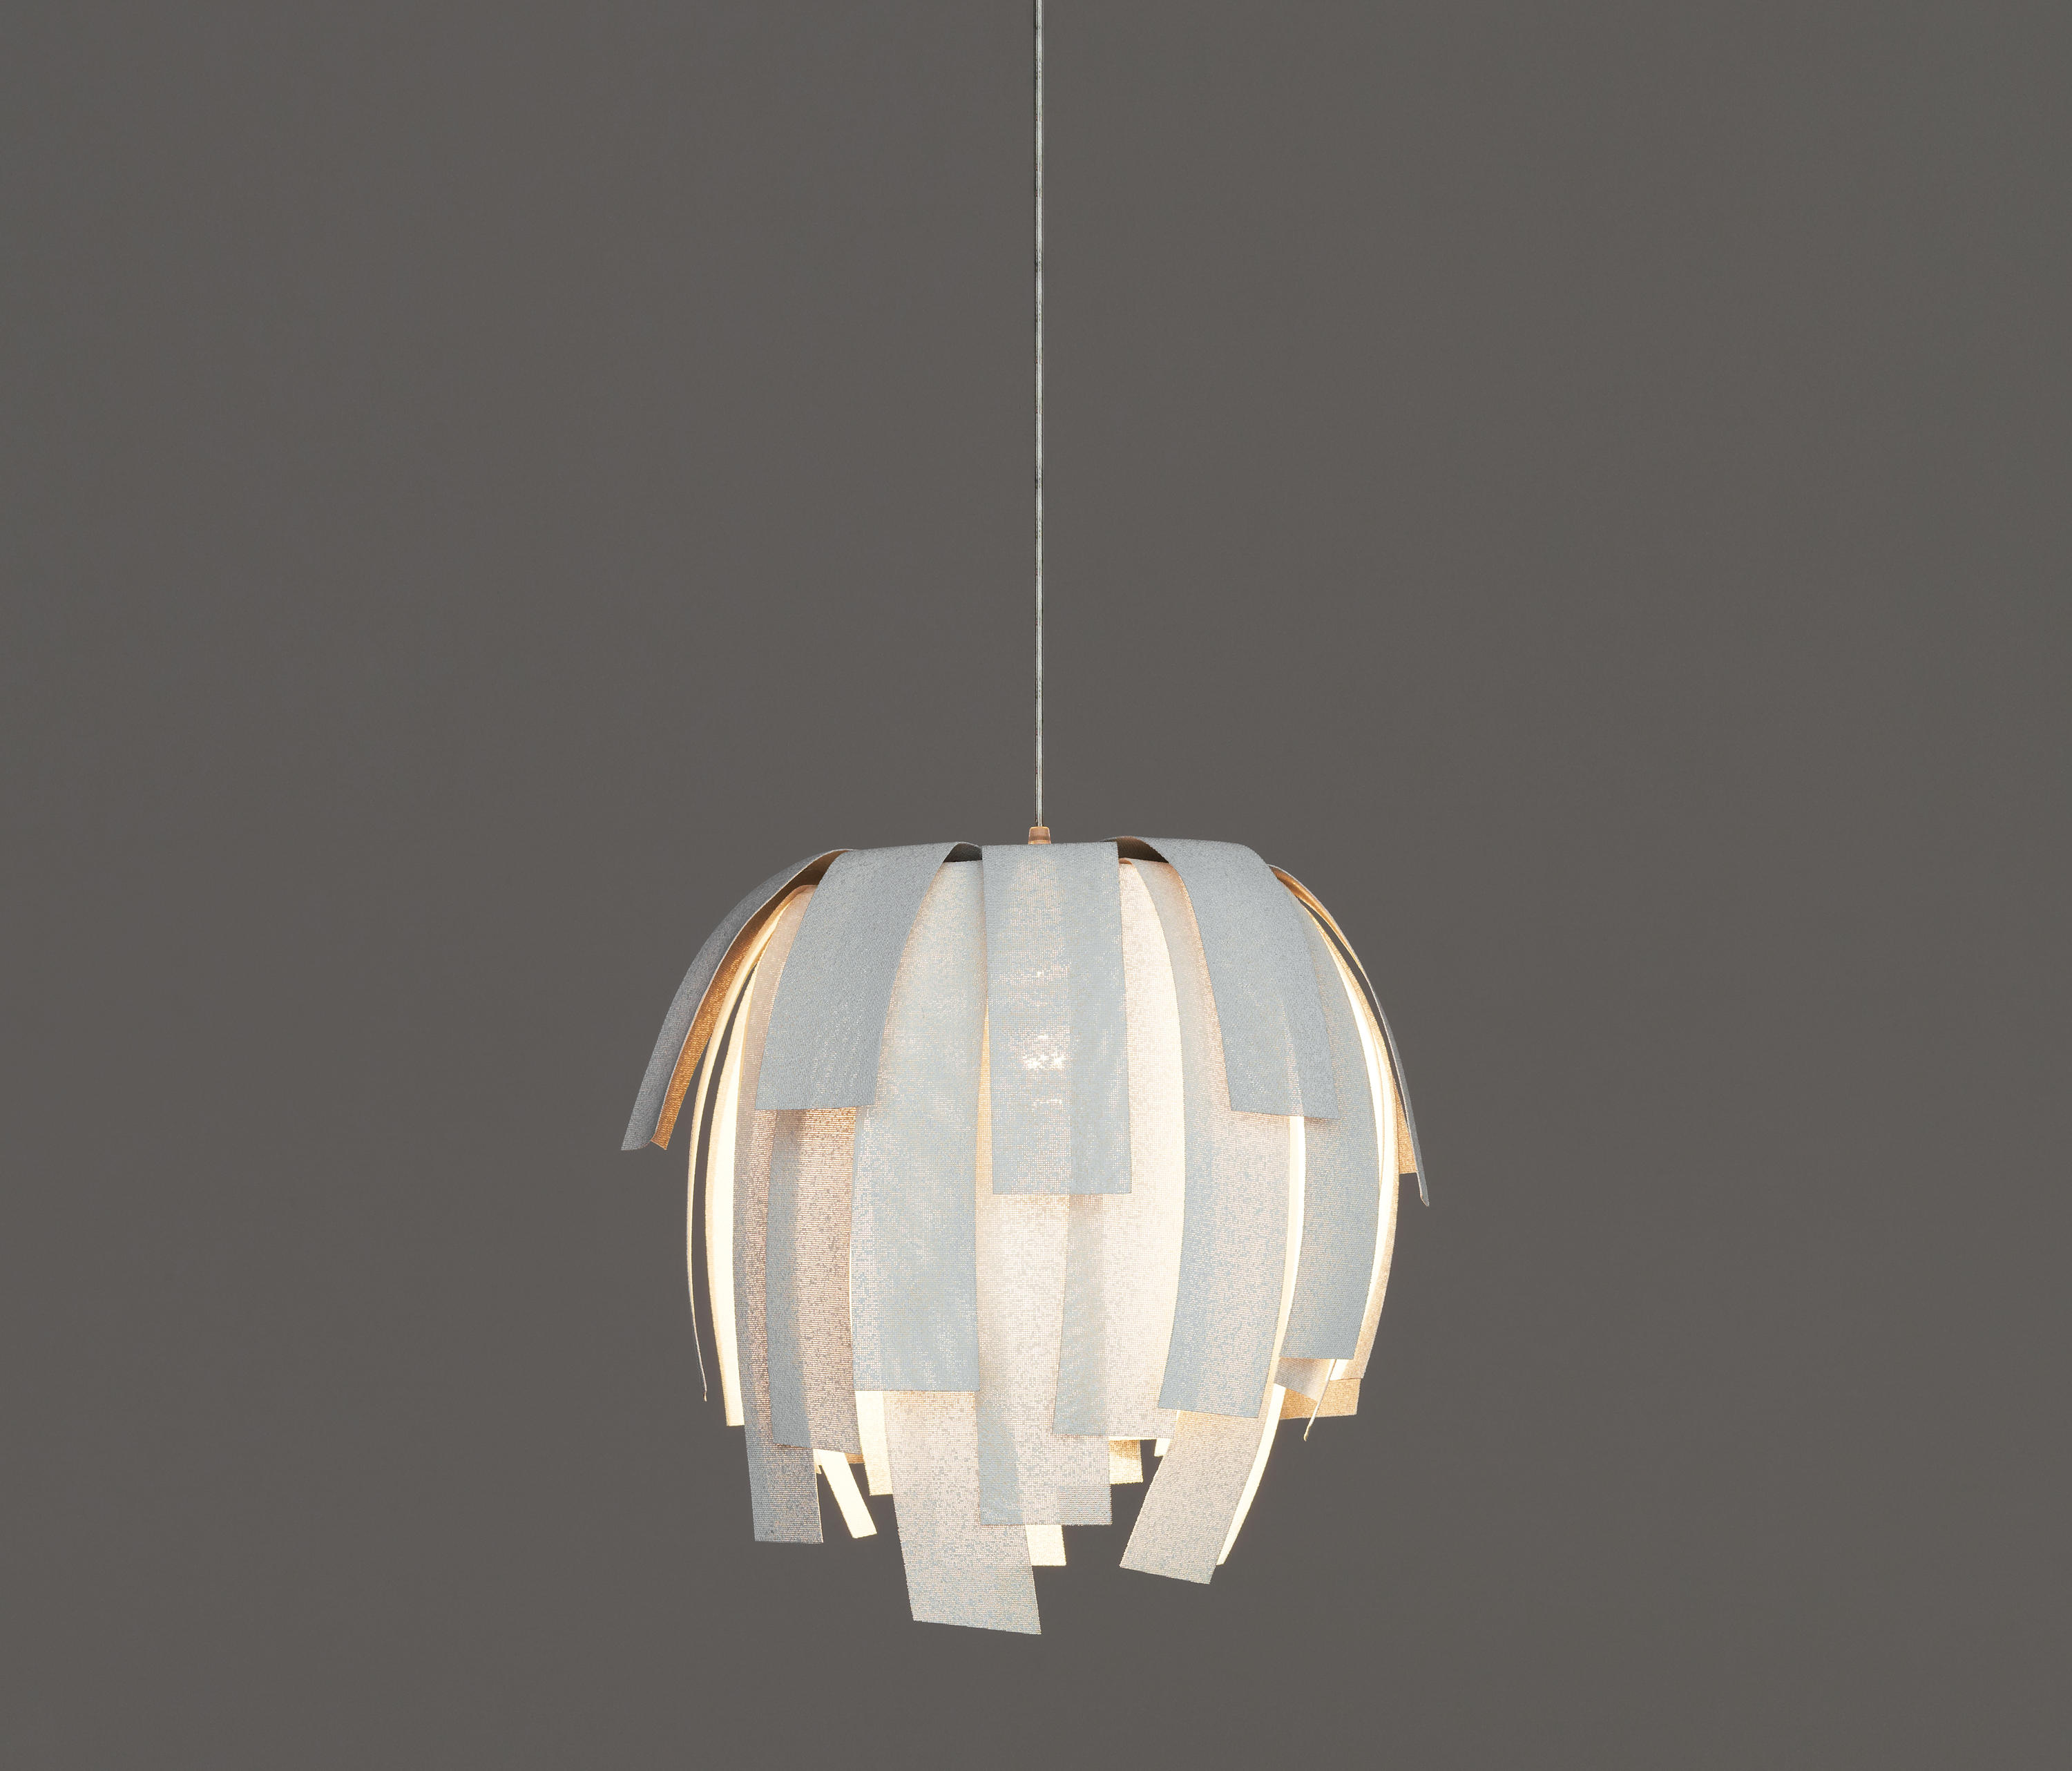 Luisa Ls04 Suspended Lights From Arturo Alvarez Architonic